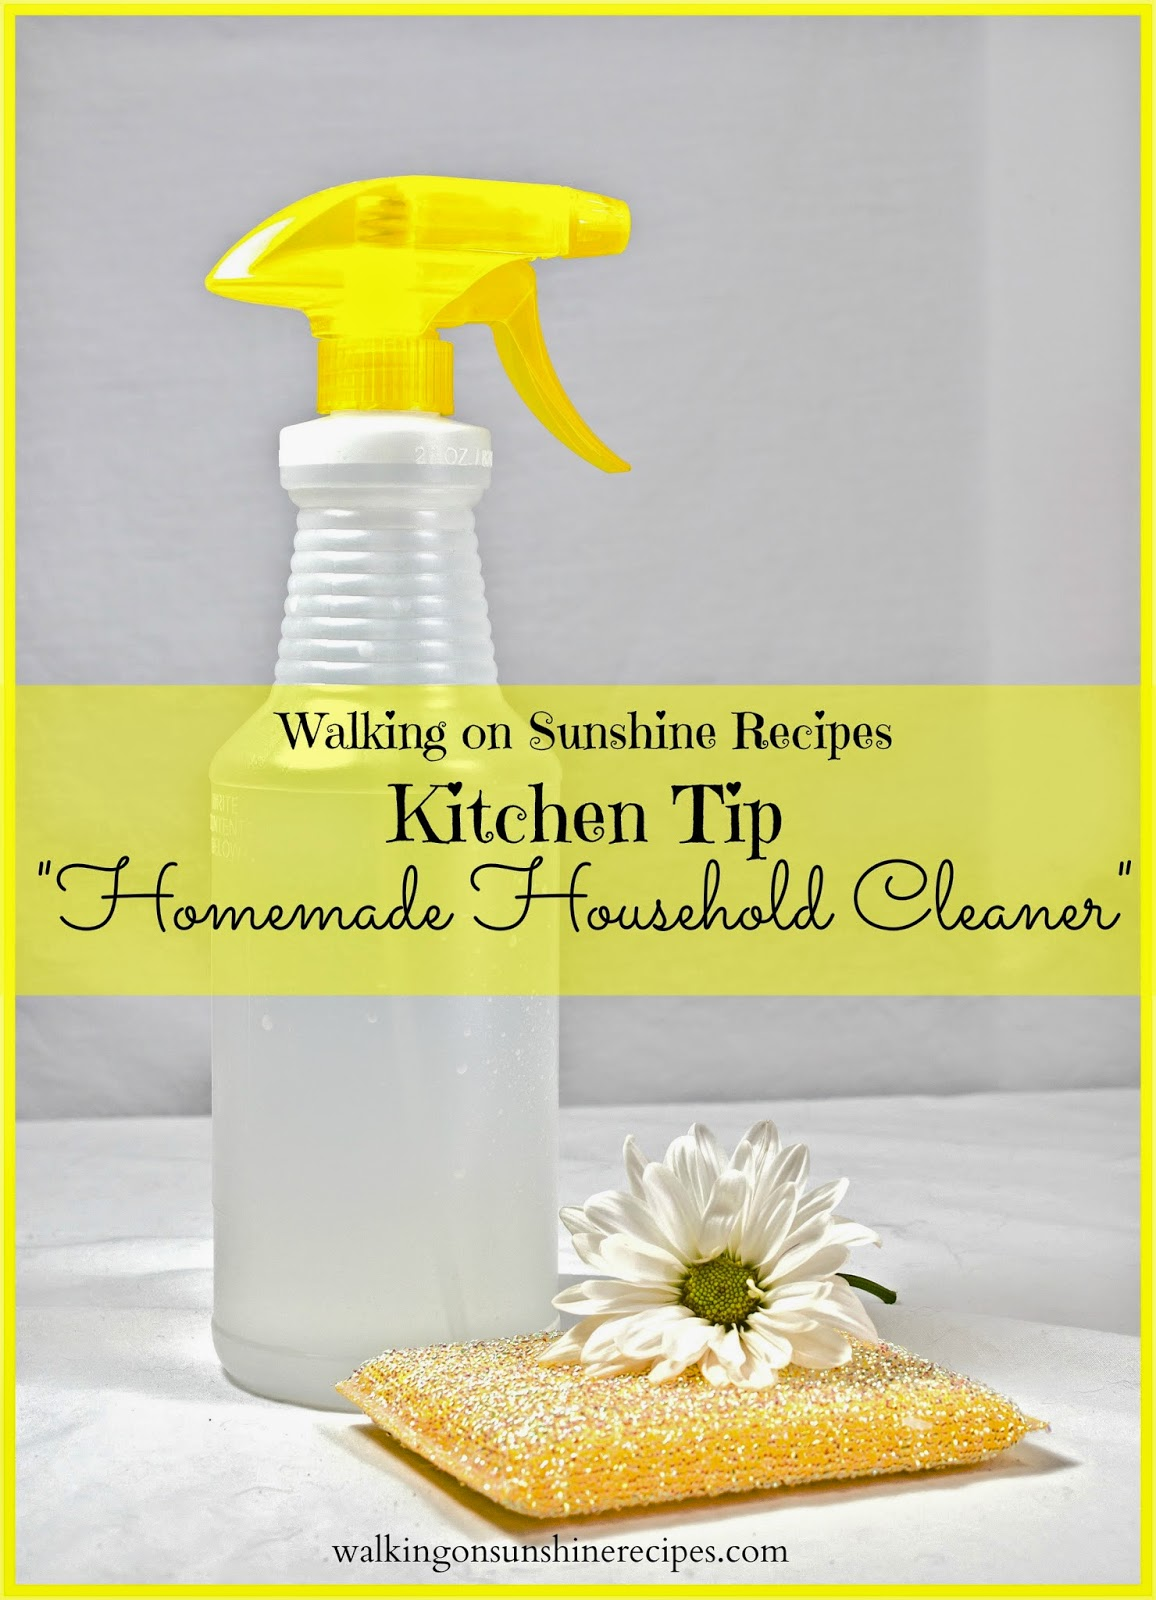 Homemade Household Cleaner from Walking on Sunshine Recipes